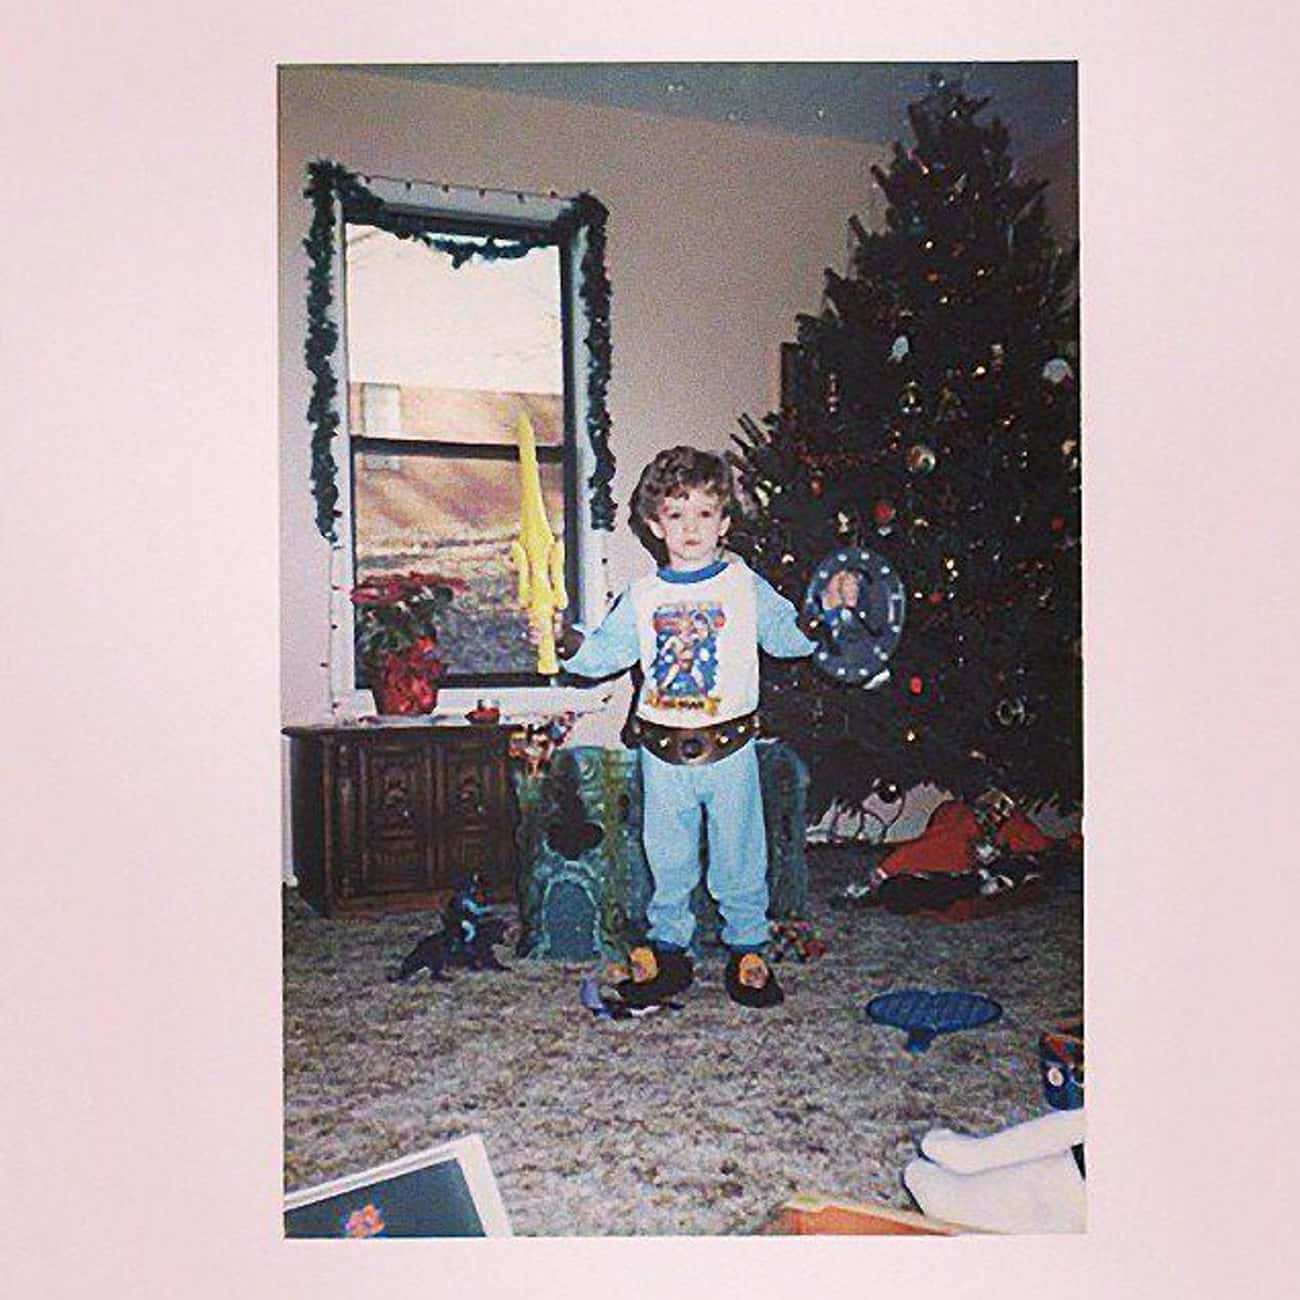 Little Justin Timberlake Cashe is listed (or ranked) 3 on the list 24 Adorable Old Photos of Celebrities Their Moms Would Probably Love to Show You